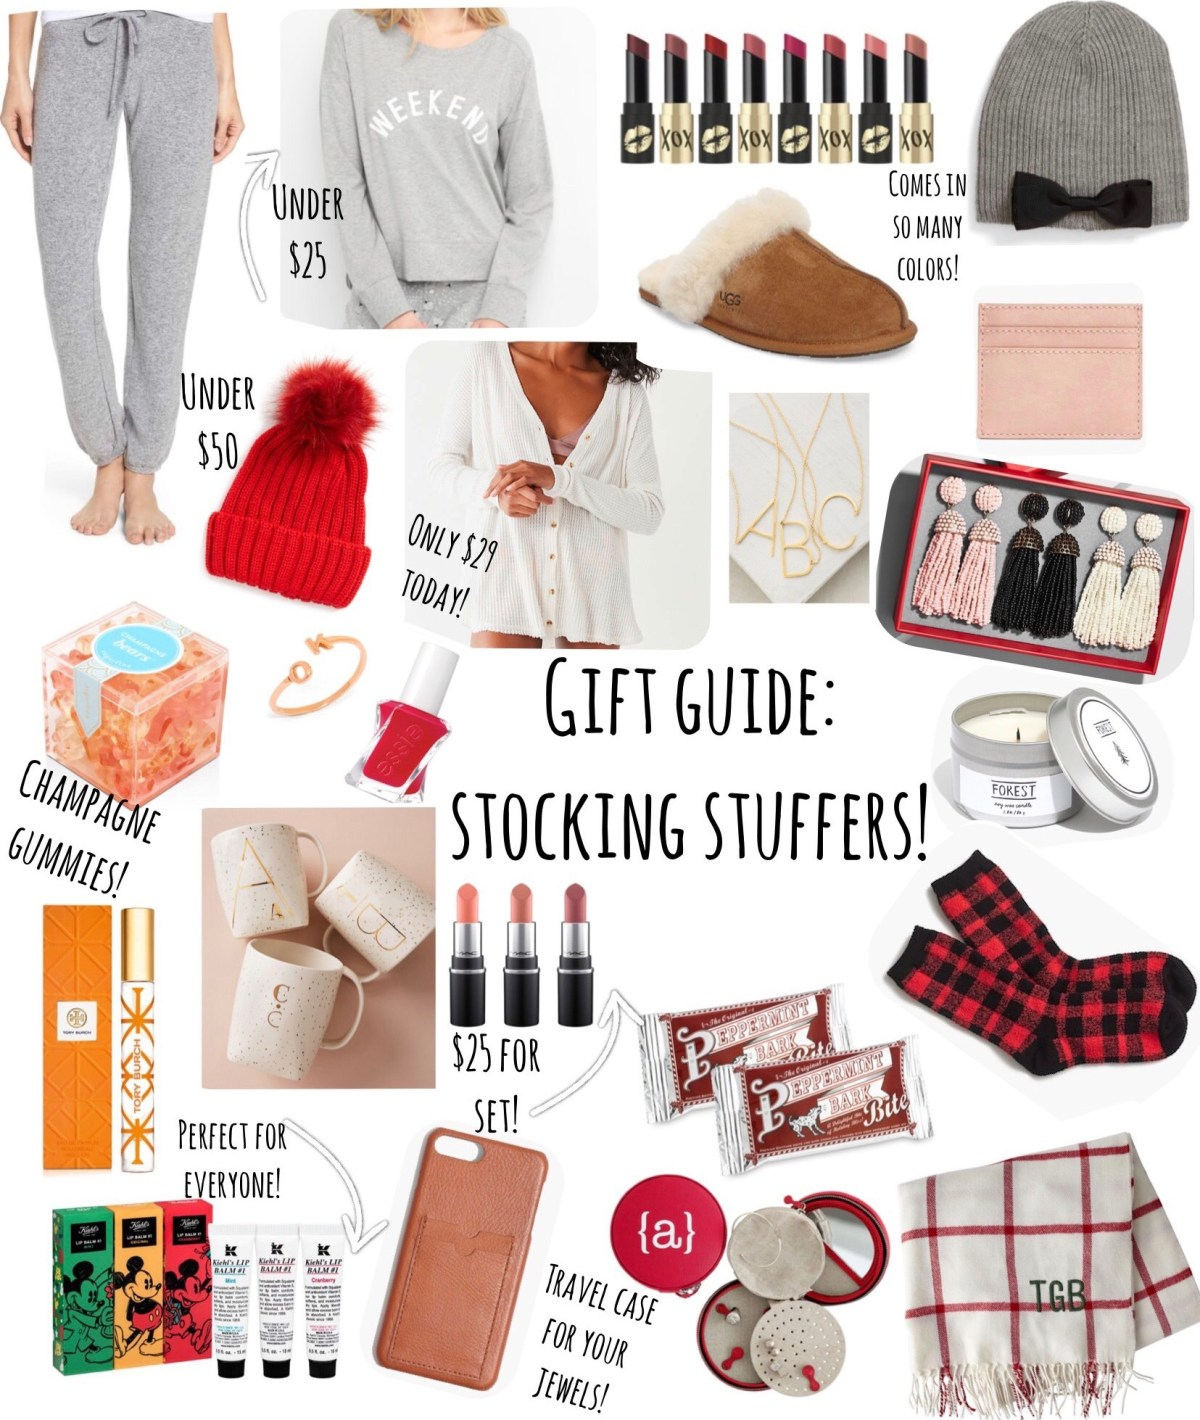 Gift Guide: Stocking Stuffers!